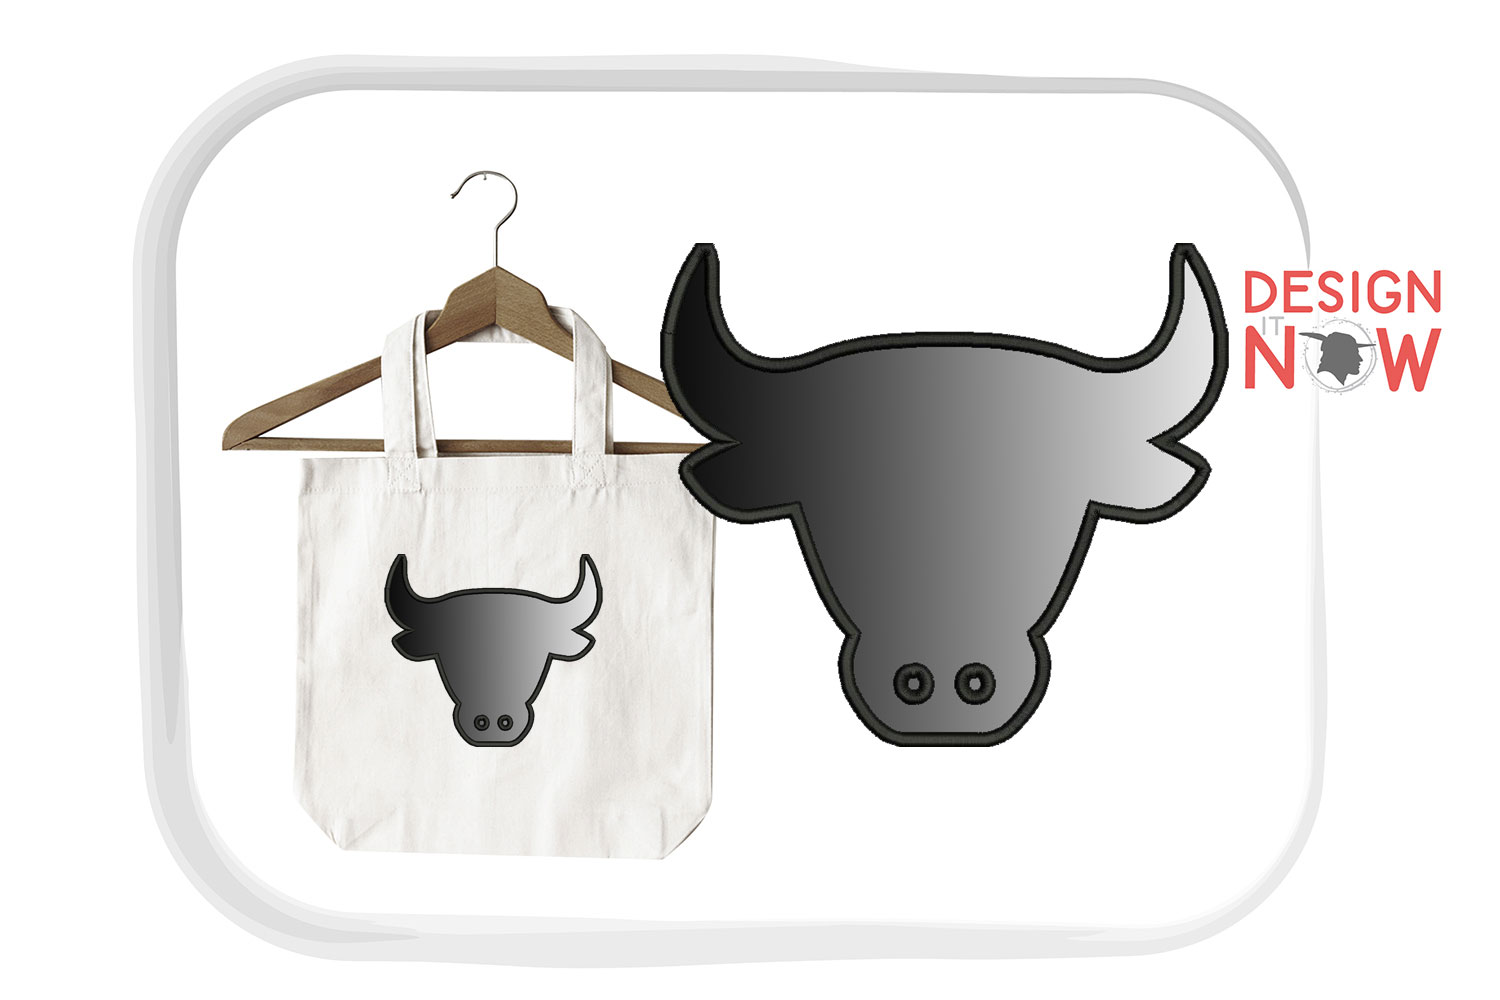 Bull Head Applique Embroidery Design, Embroidery Pattern example image 3